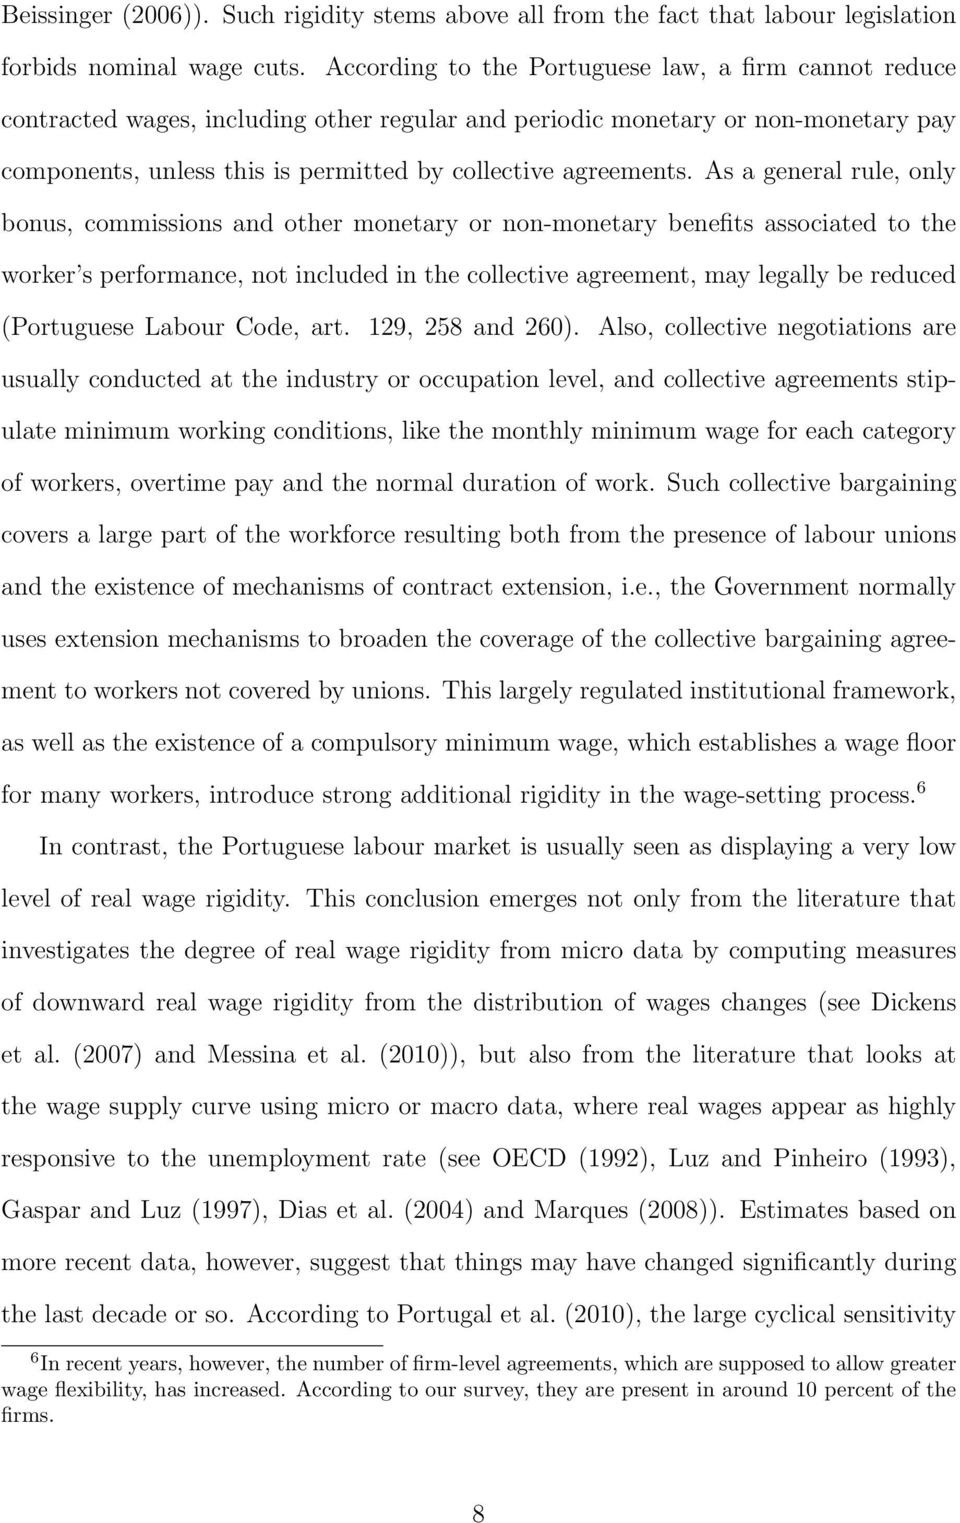 As a general rule, only bonus, commissions and other monetary or non-monetary benefits associated to the worker s performance, not included in the collective agreement, may legally be reduced